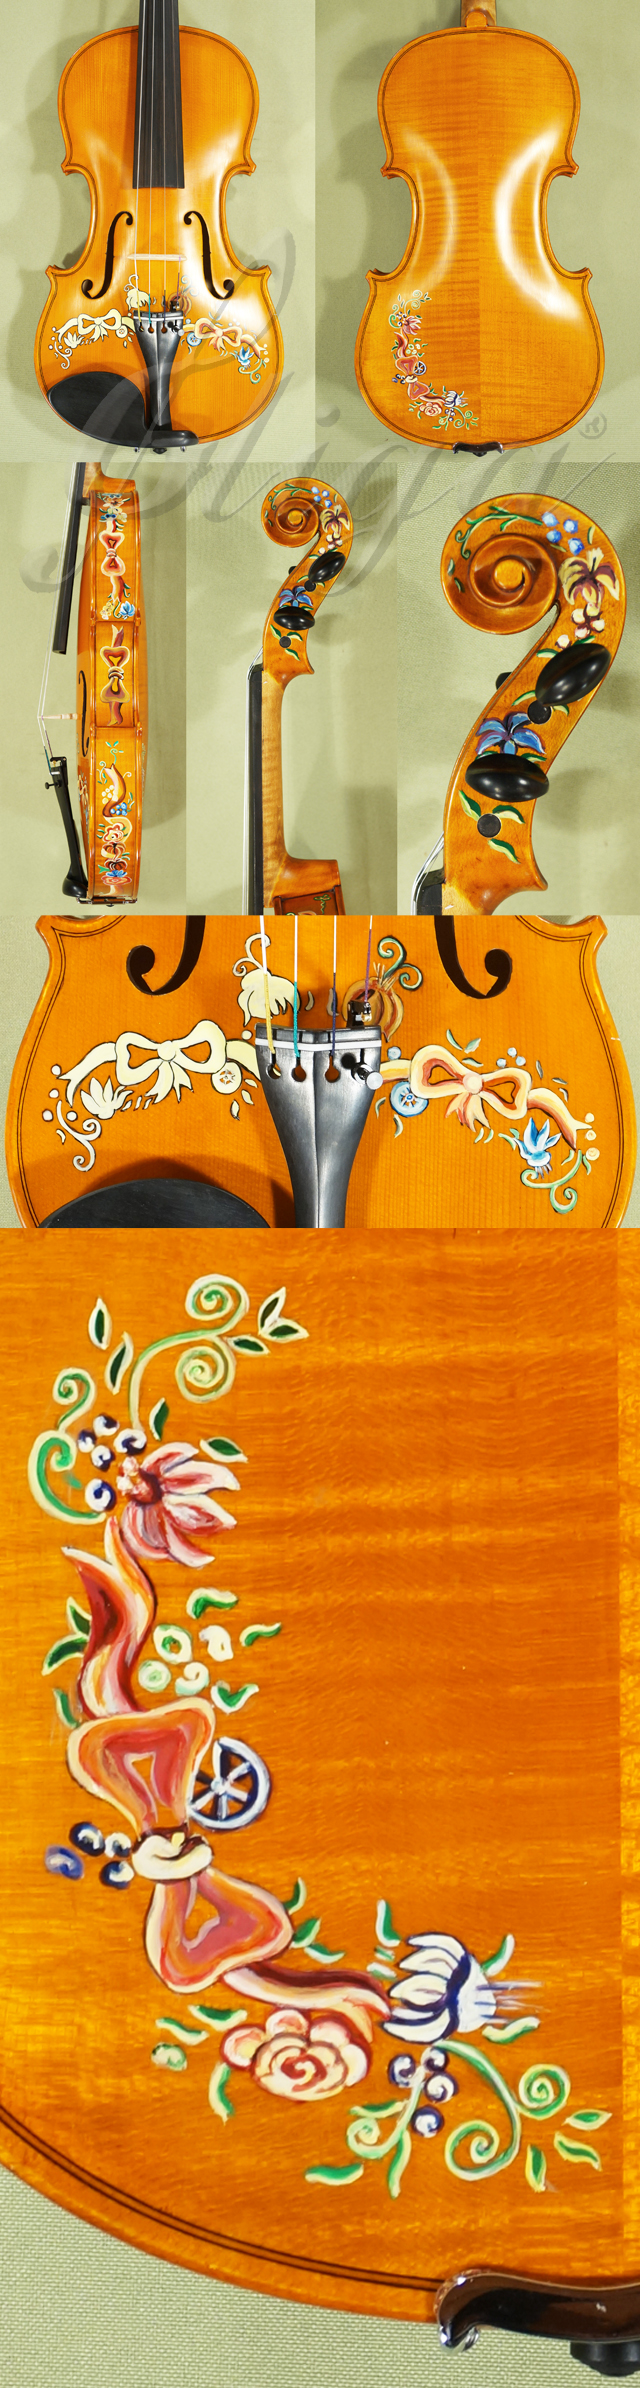 4/4 WORKSHOP 'GEMS 1' Painted Arabesque Violin